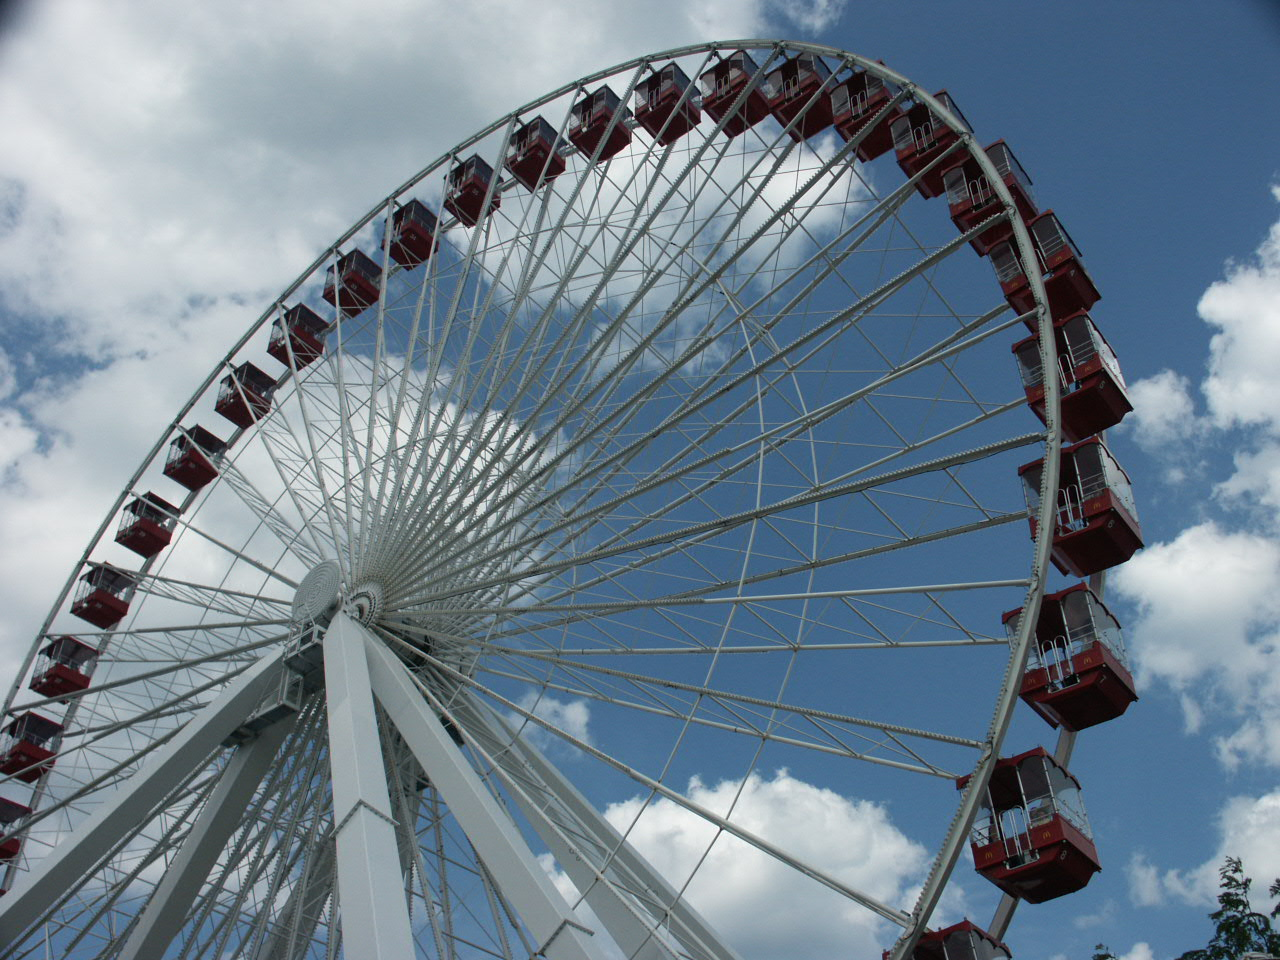 Ferris Wheel at Navy Pier